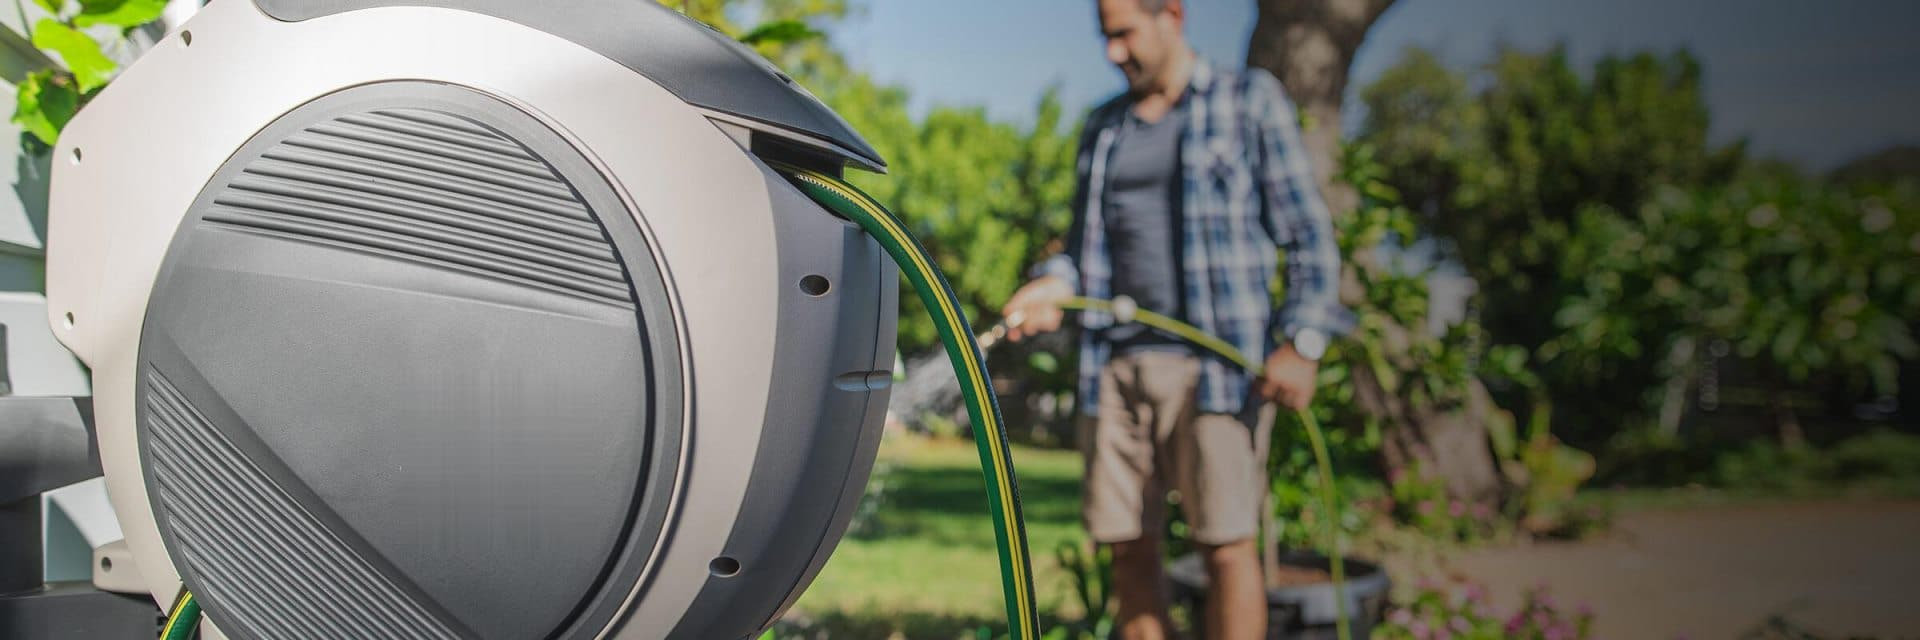 10 Best Hose Reels – Forget about Hose Tangles and Cracks!